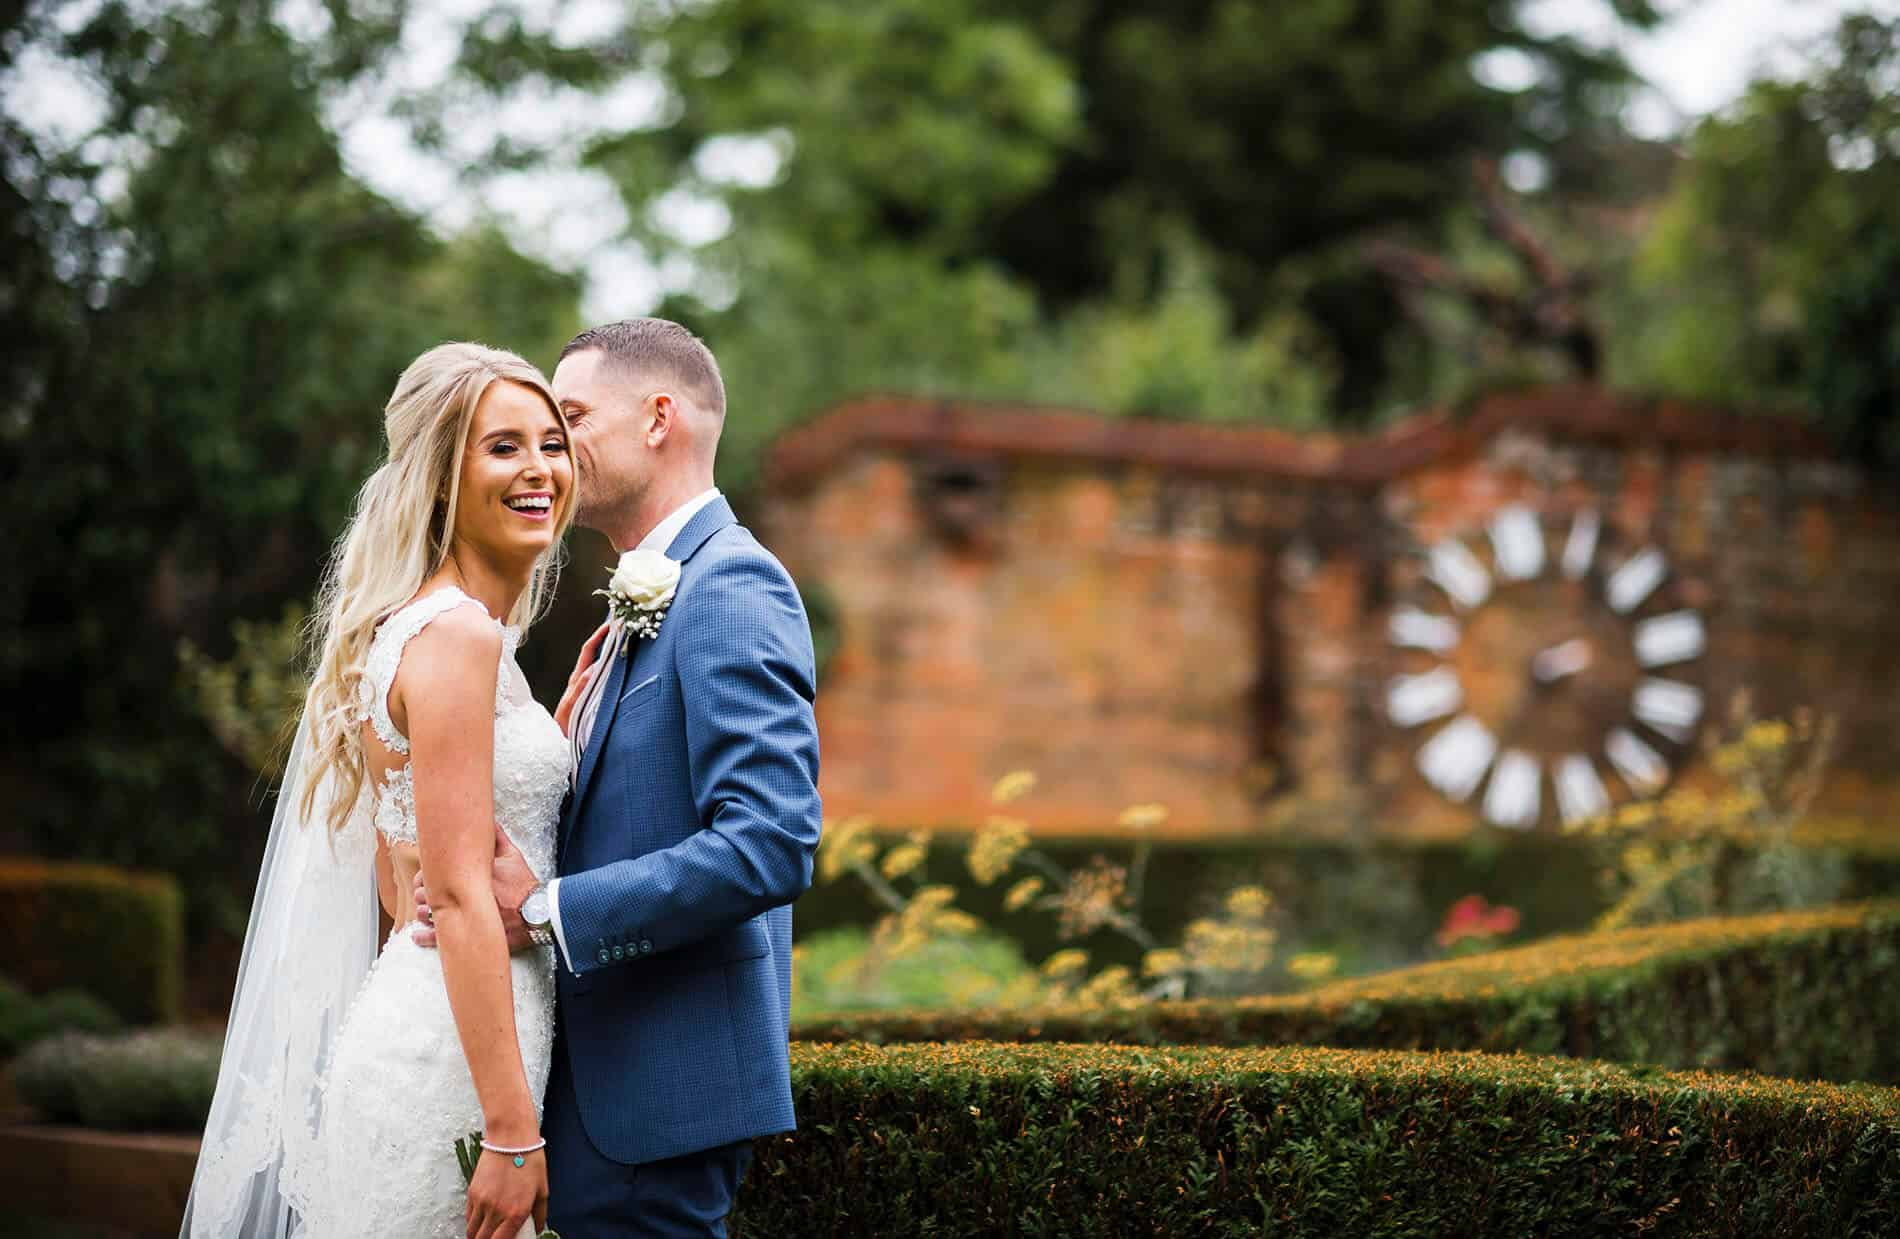 Nuthurst-Grange-Wedding-Photography-Philip-James-covers-Birmingham-The-West-Midlands-Solihull-and-Destination-weddings.-Wedding-photography-Birmingham-is-my-passion